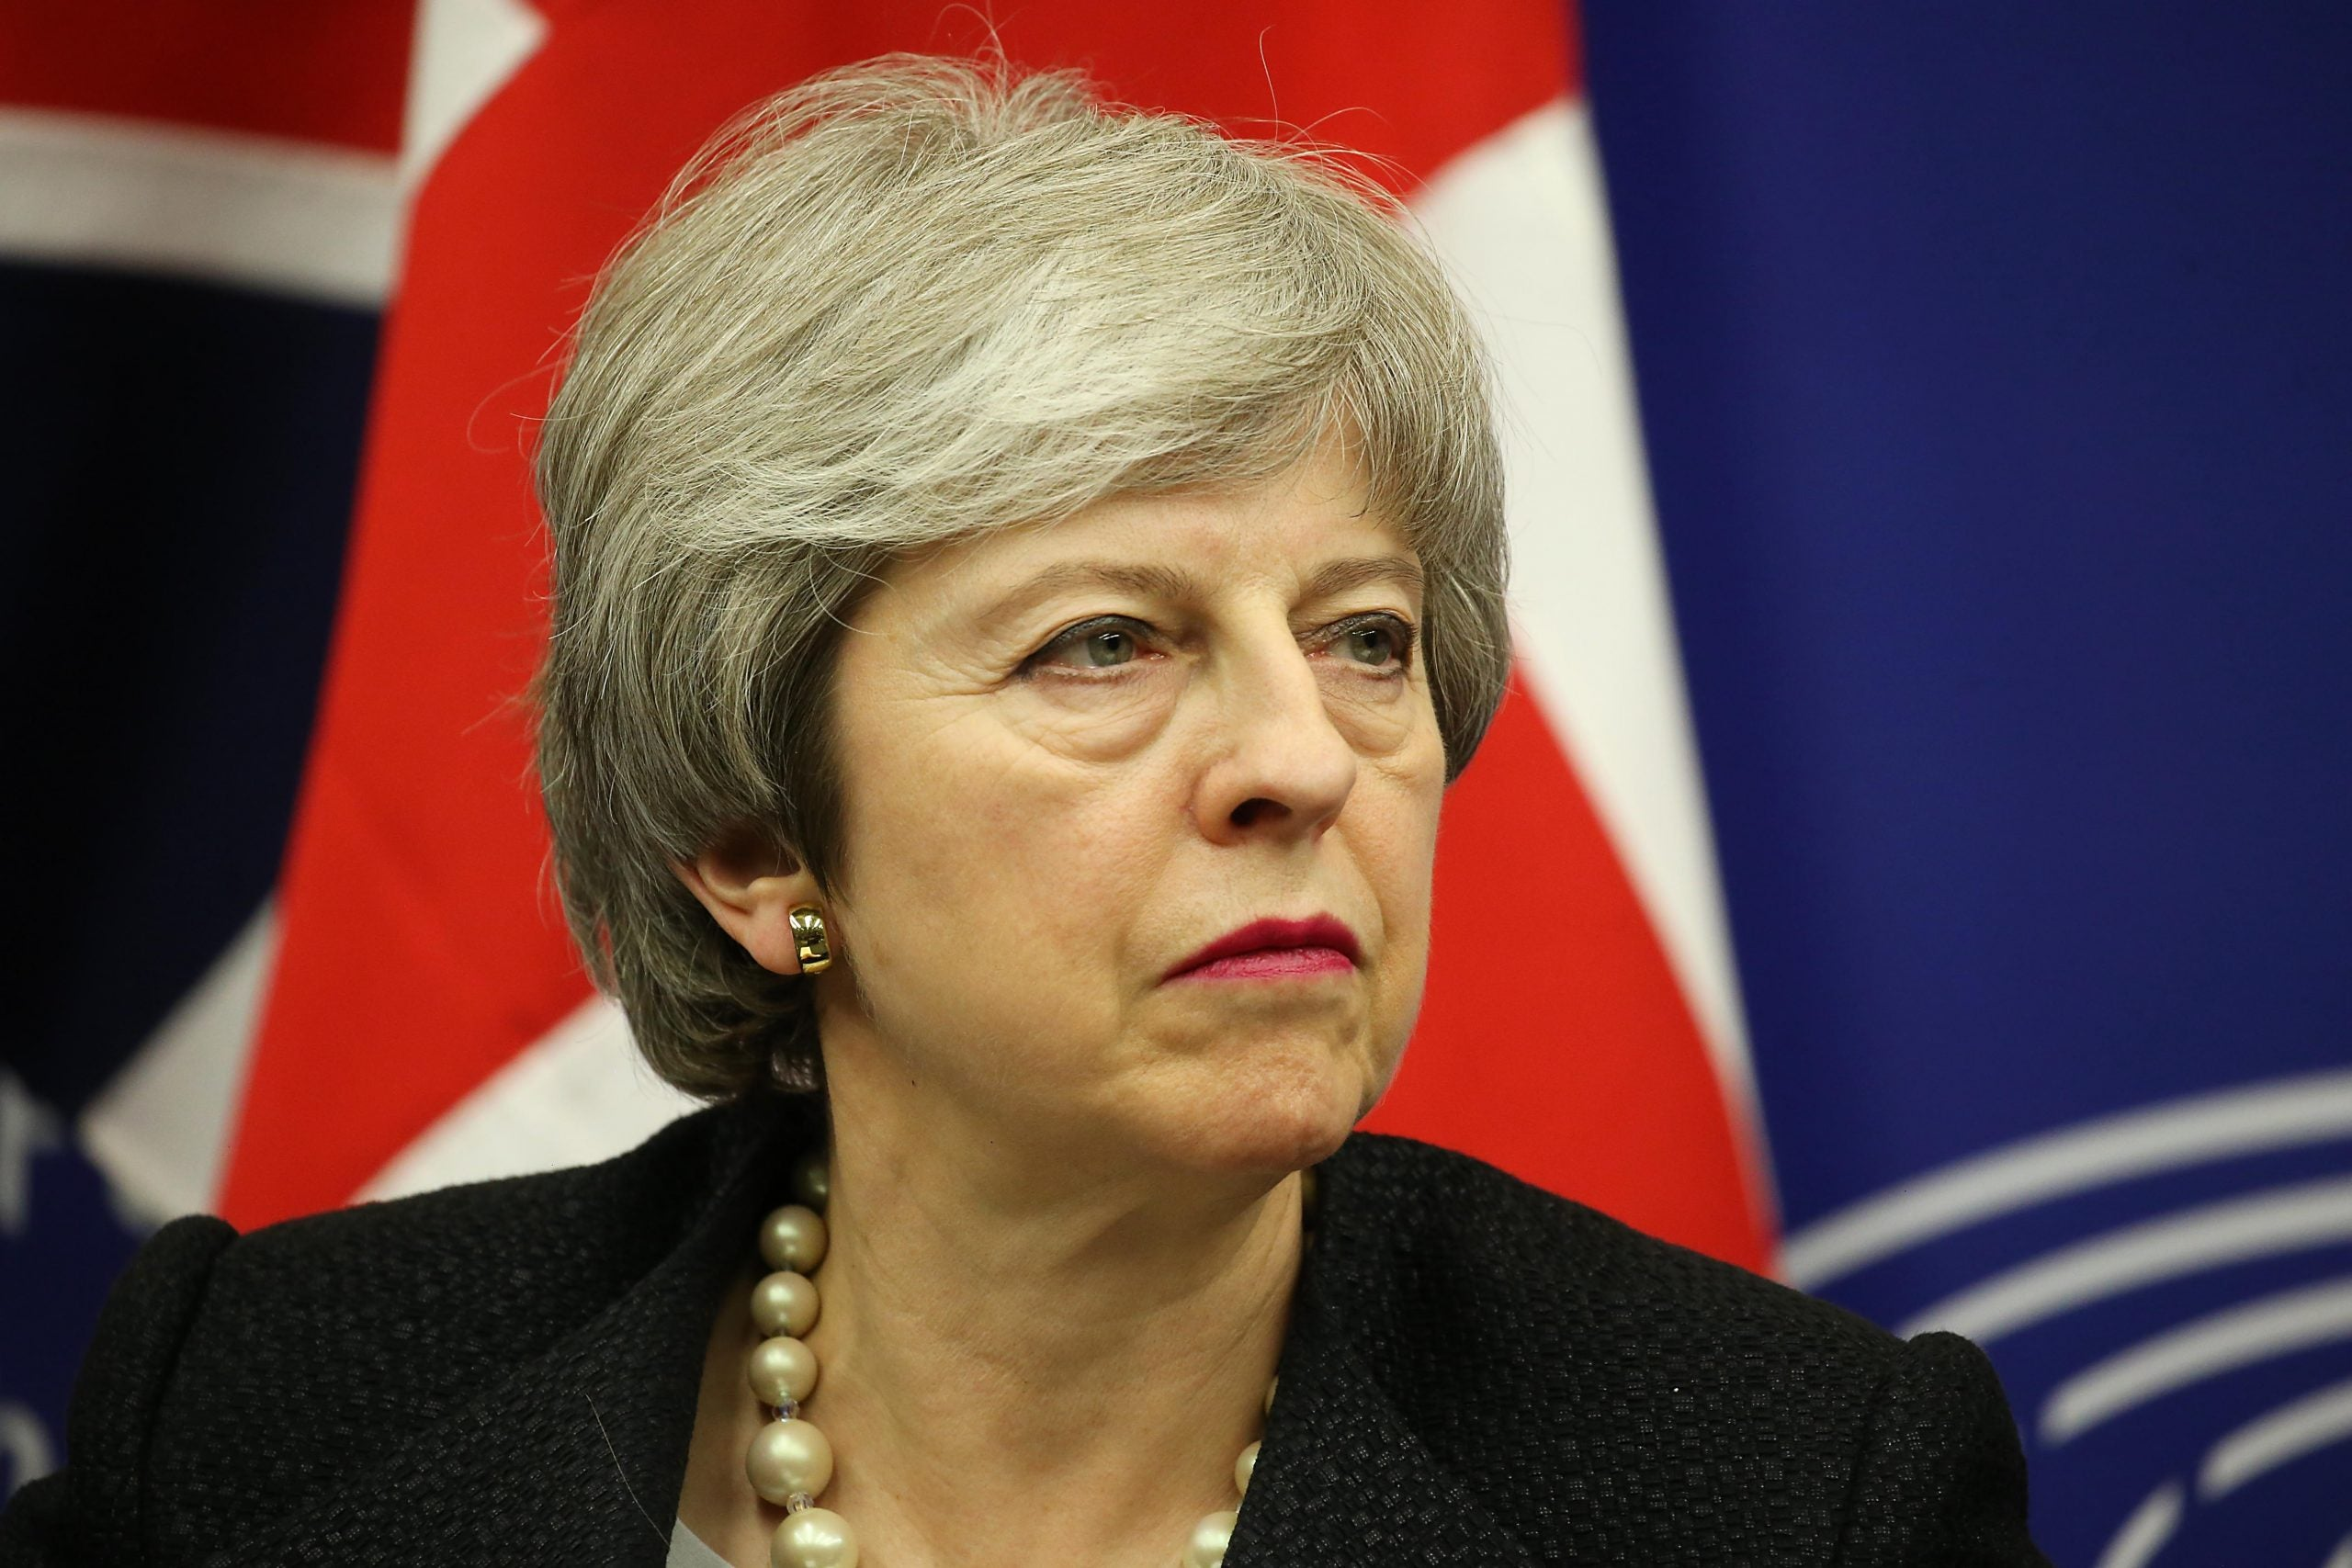 Four things we learnt from PMQs this week